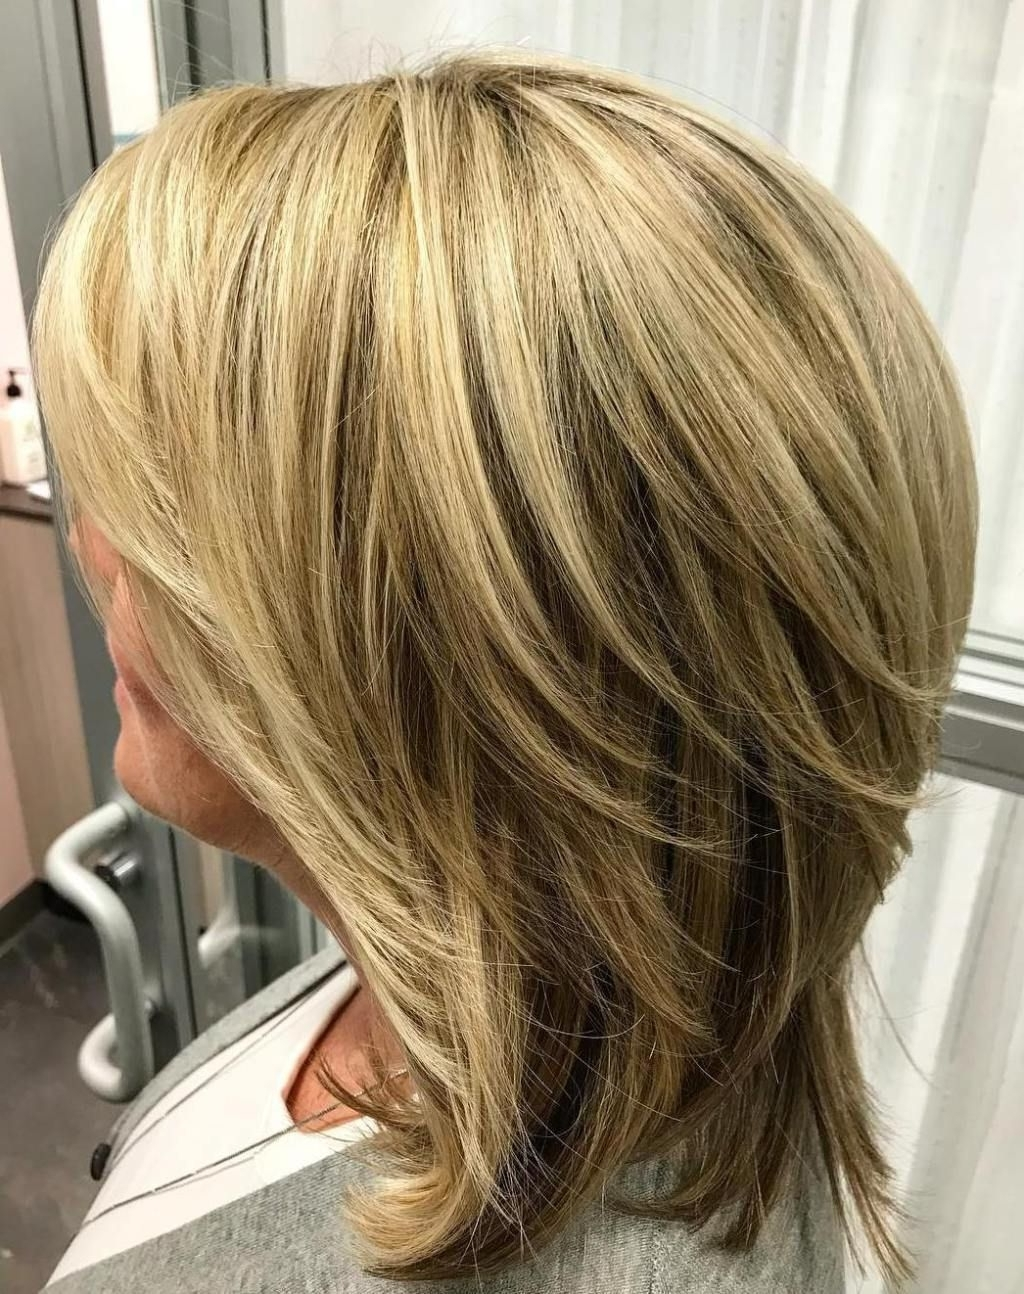 15 Sassy Hairstyles Featuring Mandy Moore Short Hair | Hair 20+ Stylish Medium Length Blonde Hairstyles For Over 50